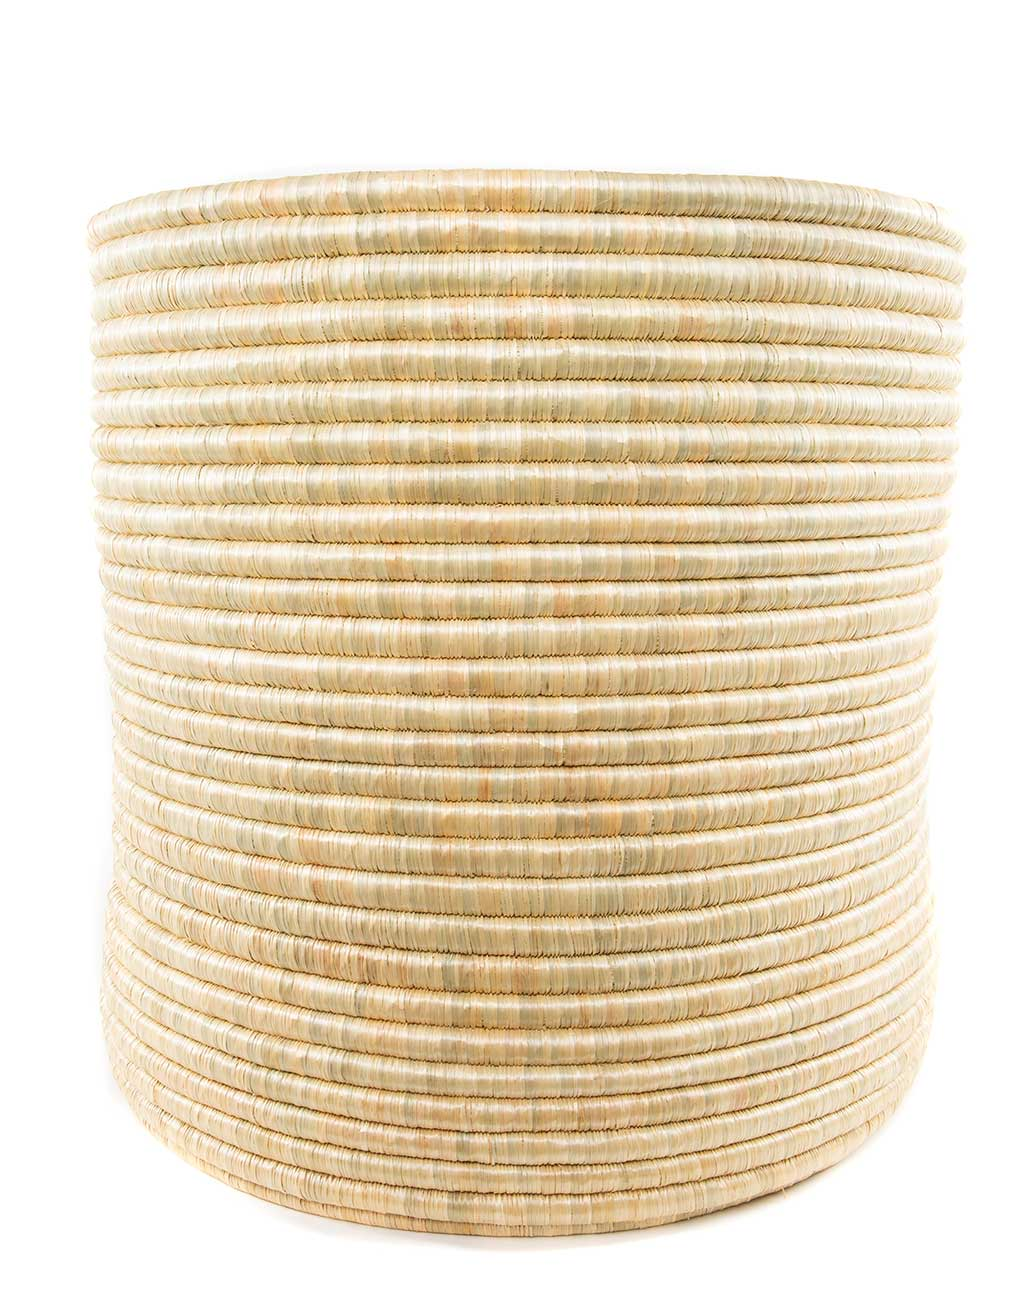 Extra Large Natural Round Woven Storage | The Little Market